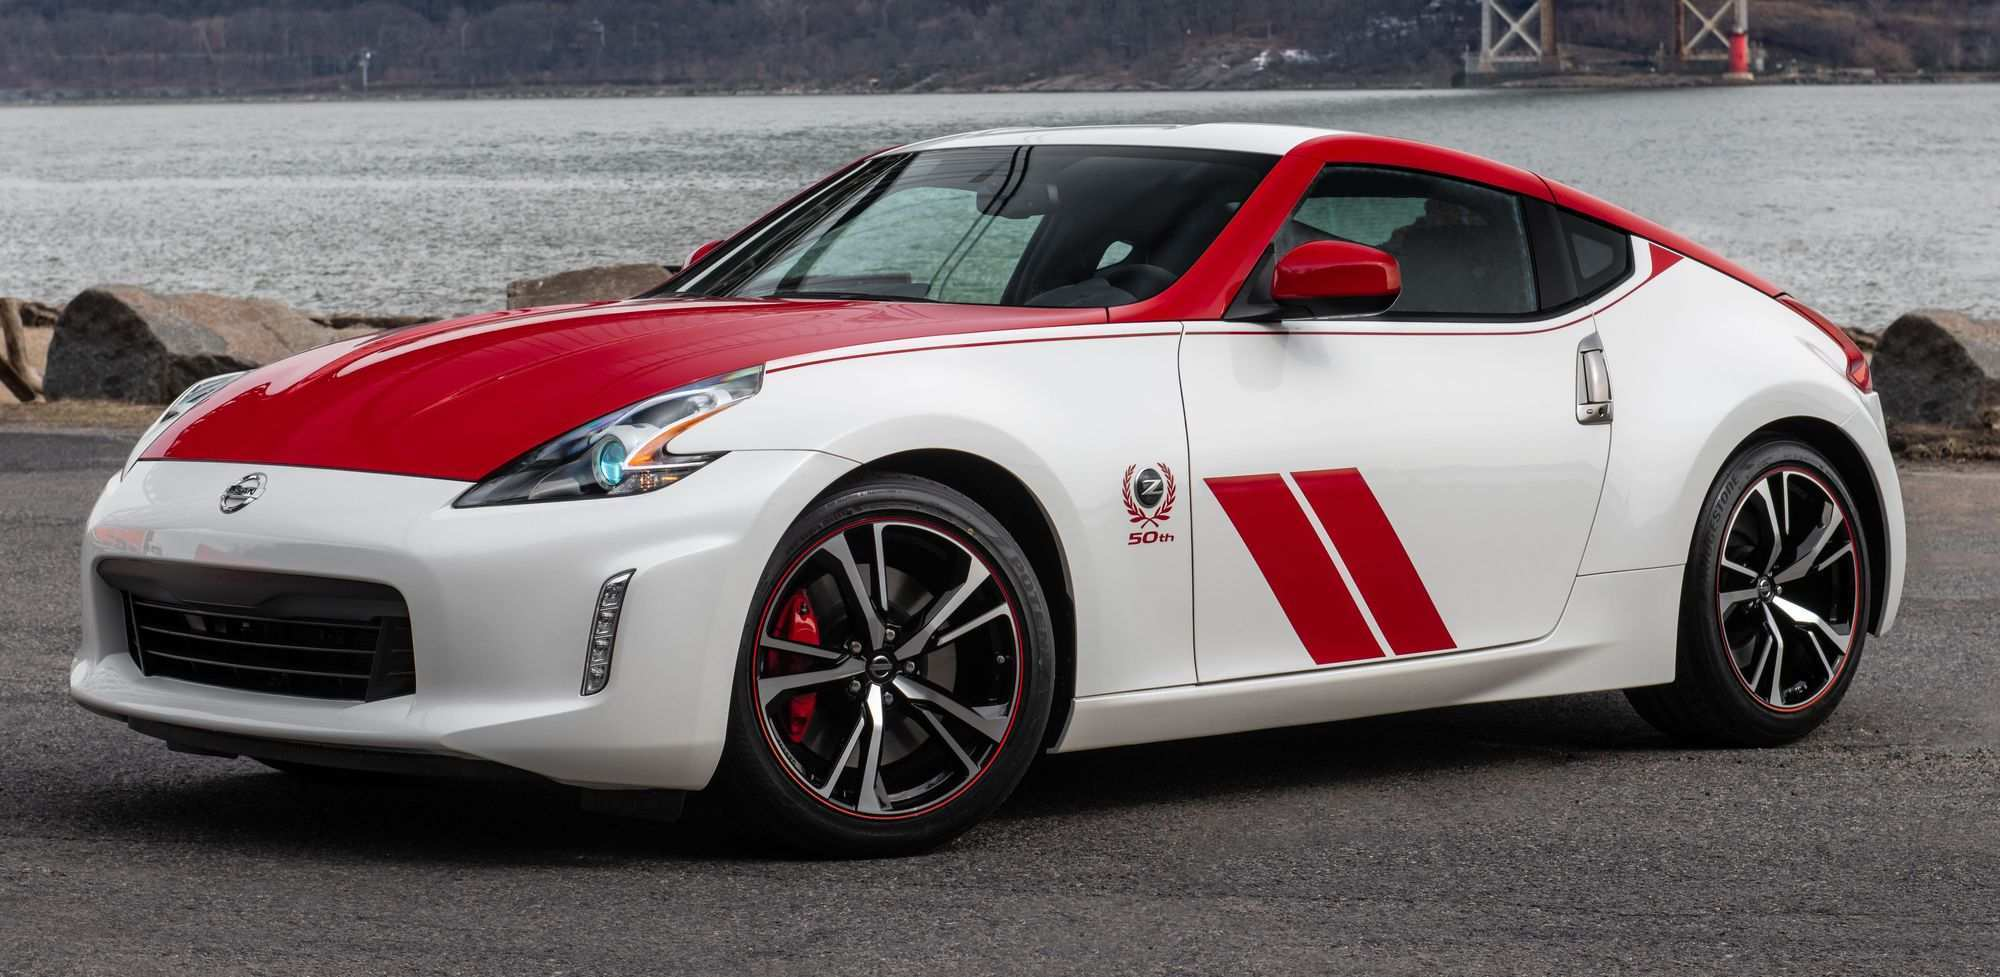 81 A 2020 Nissan Z Turbo Nismo Concept